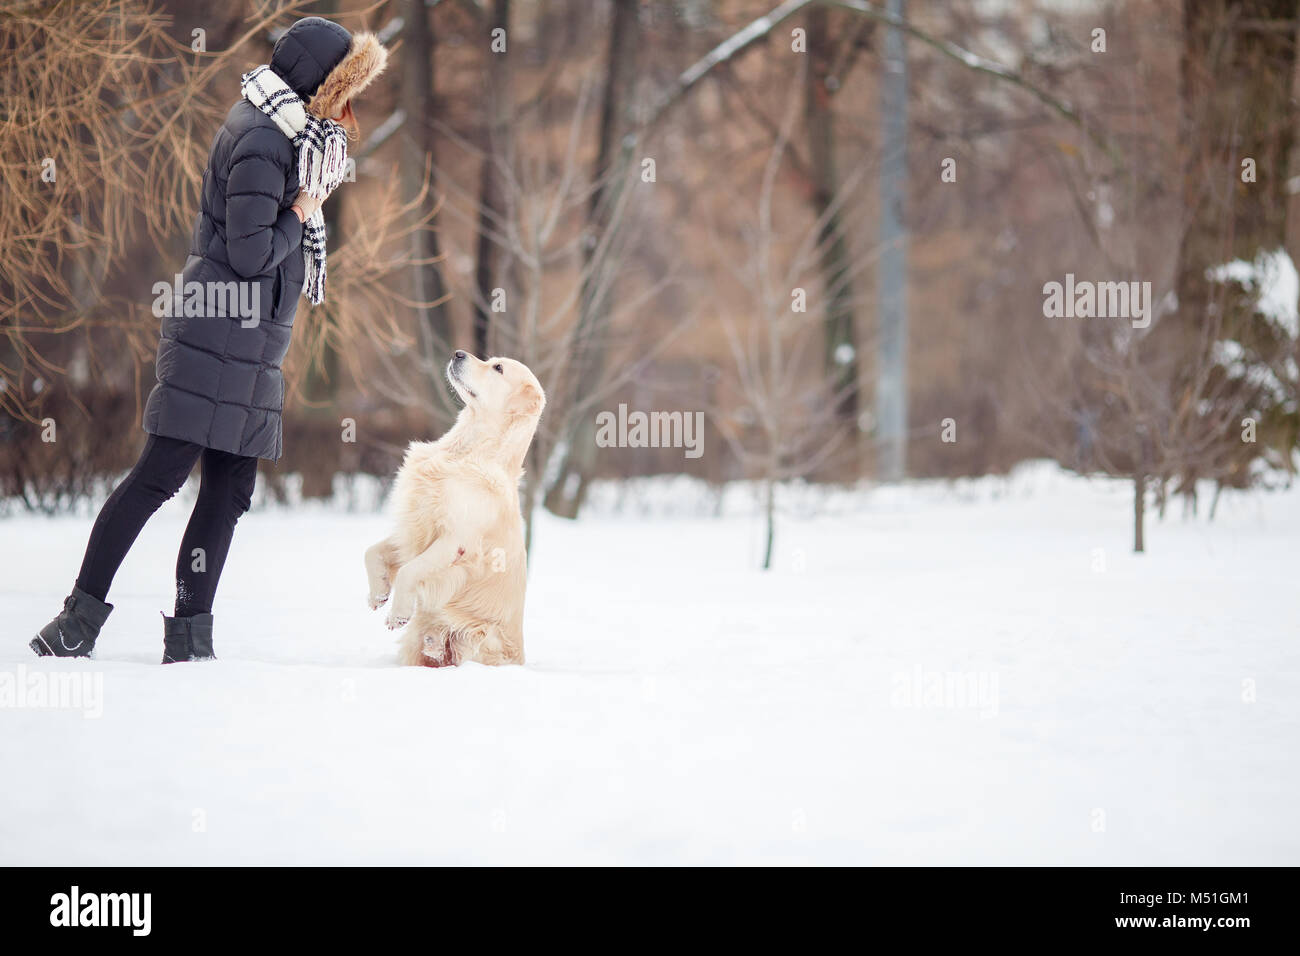 Picture of young woman in black jacket training dog in snowy park - Stock Image